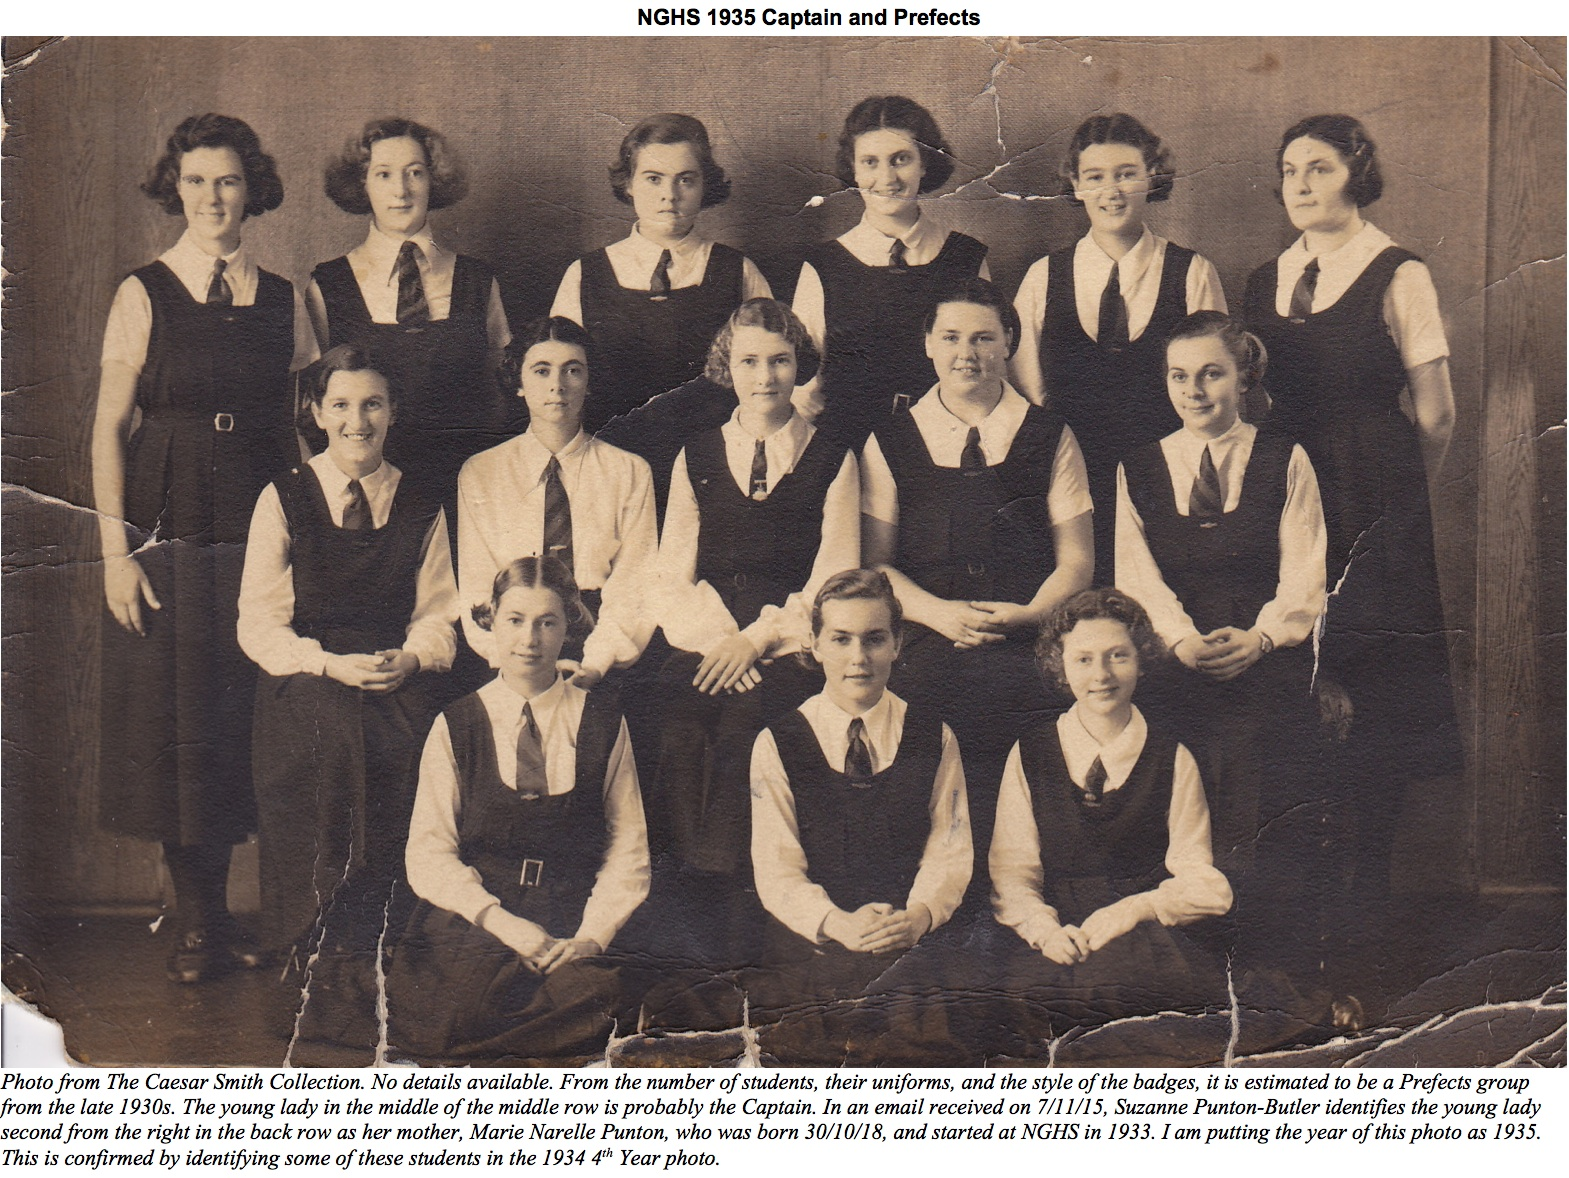 NGHS 1935 Captain and Prefects